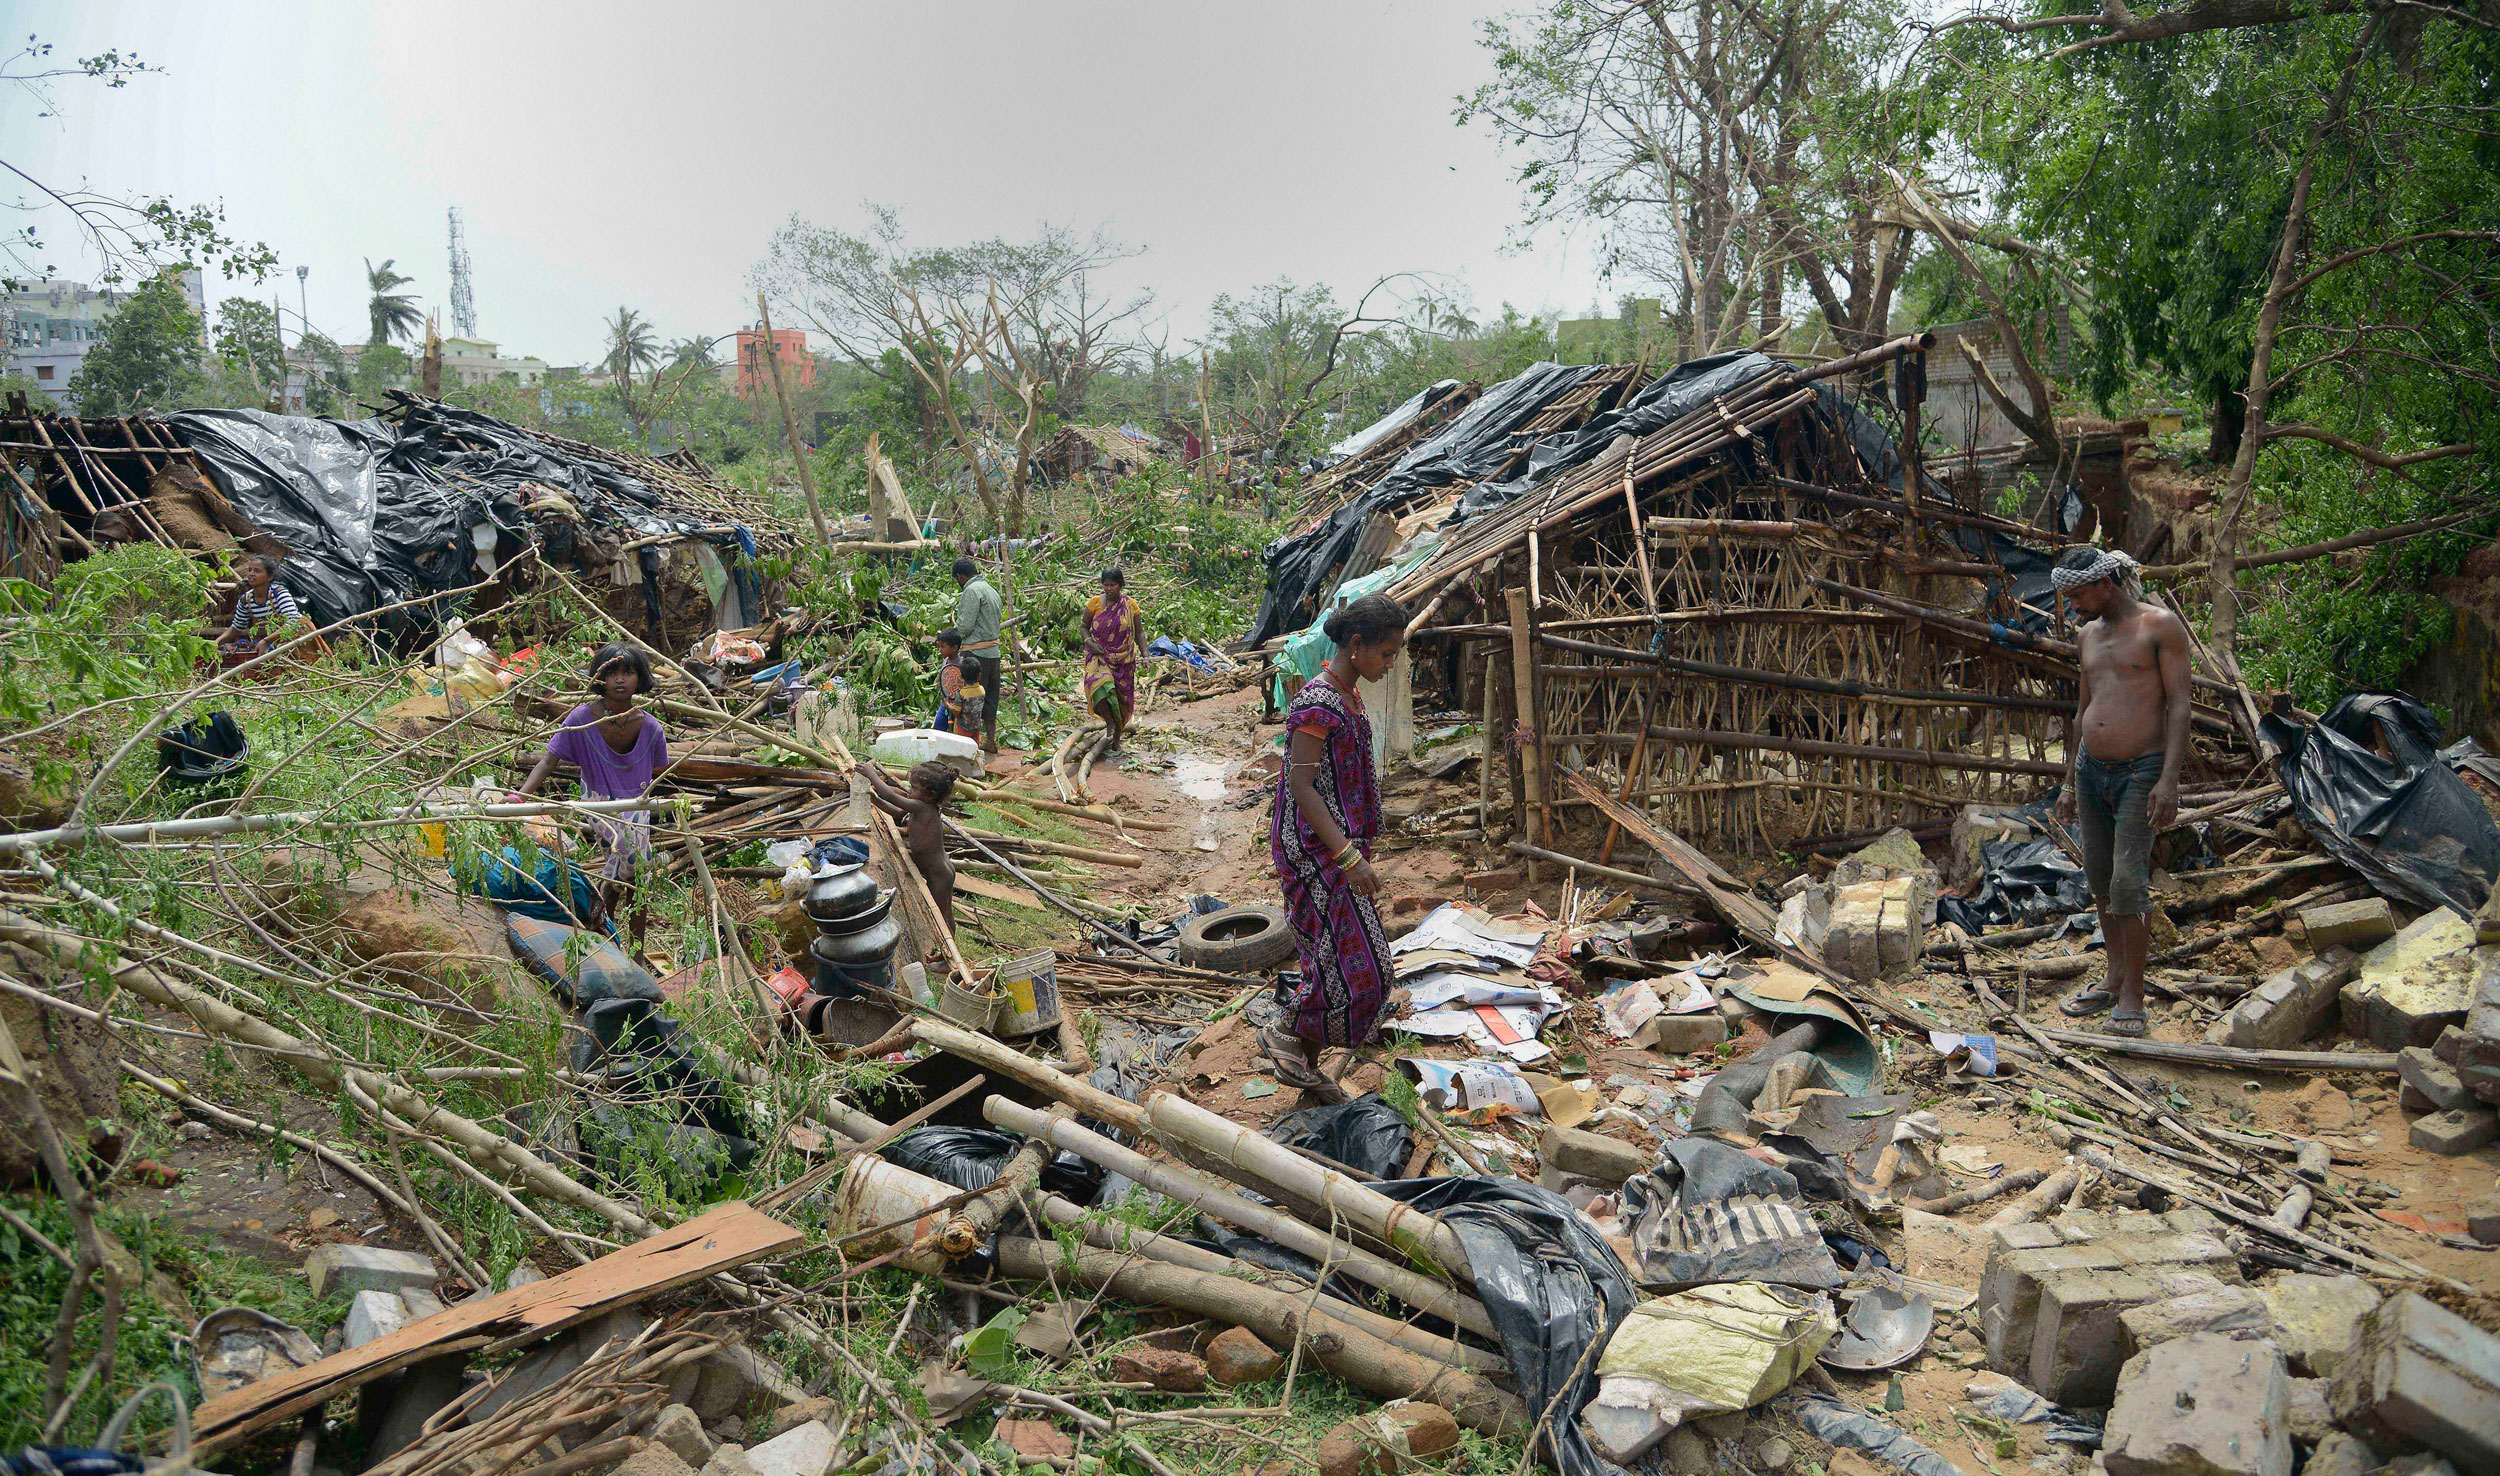 Disaster response: on the right path but not enough